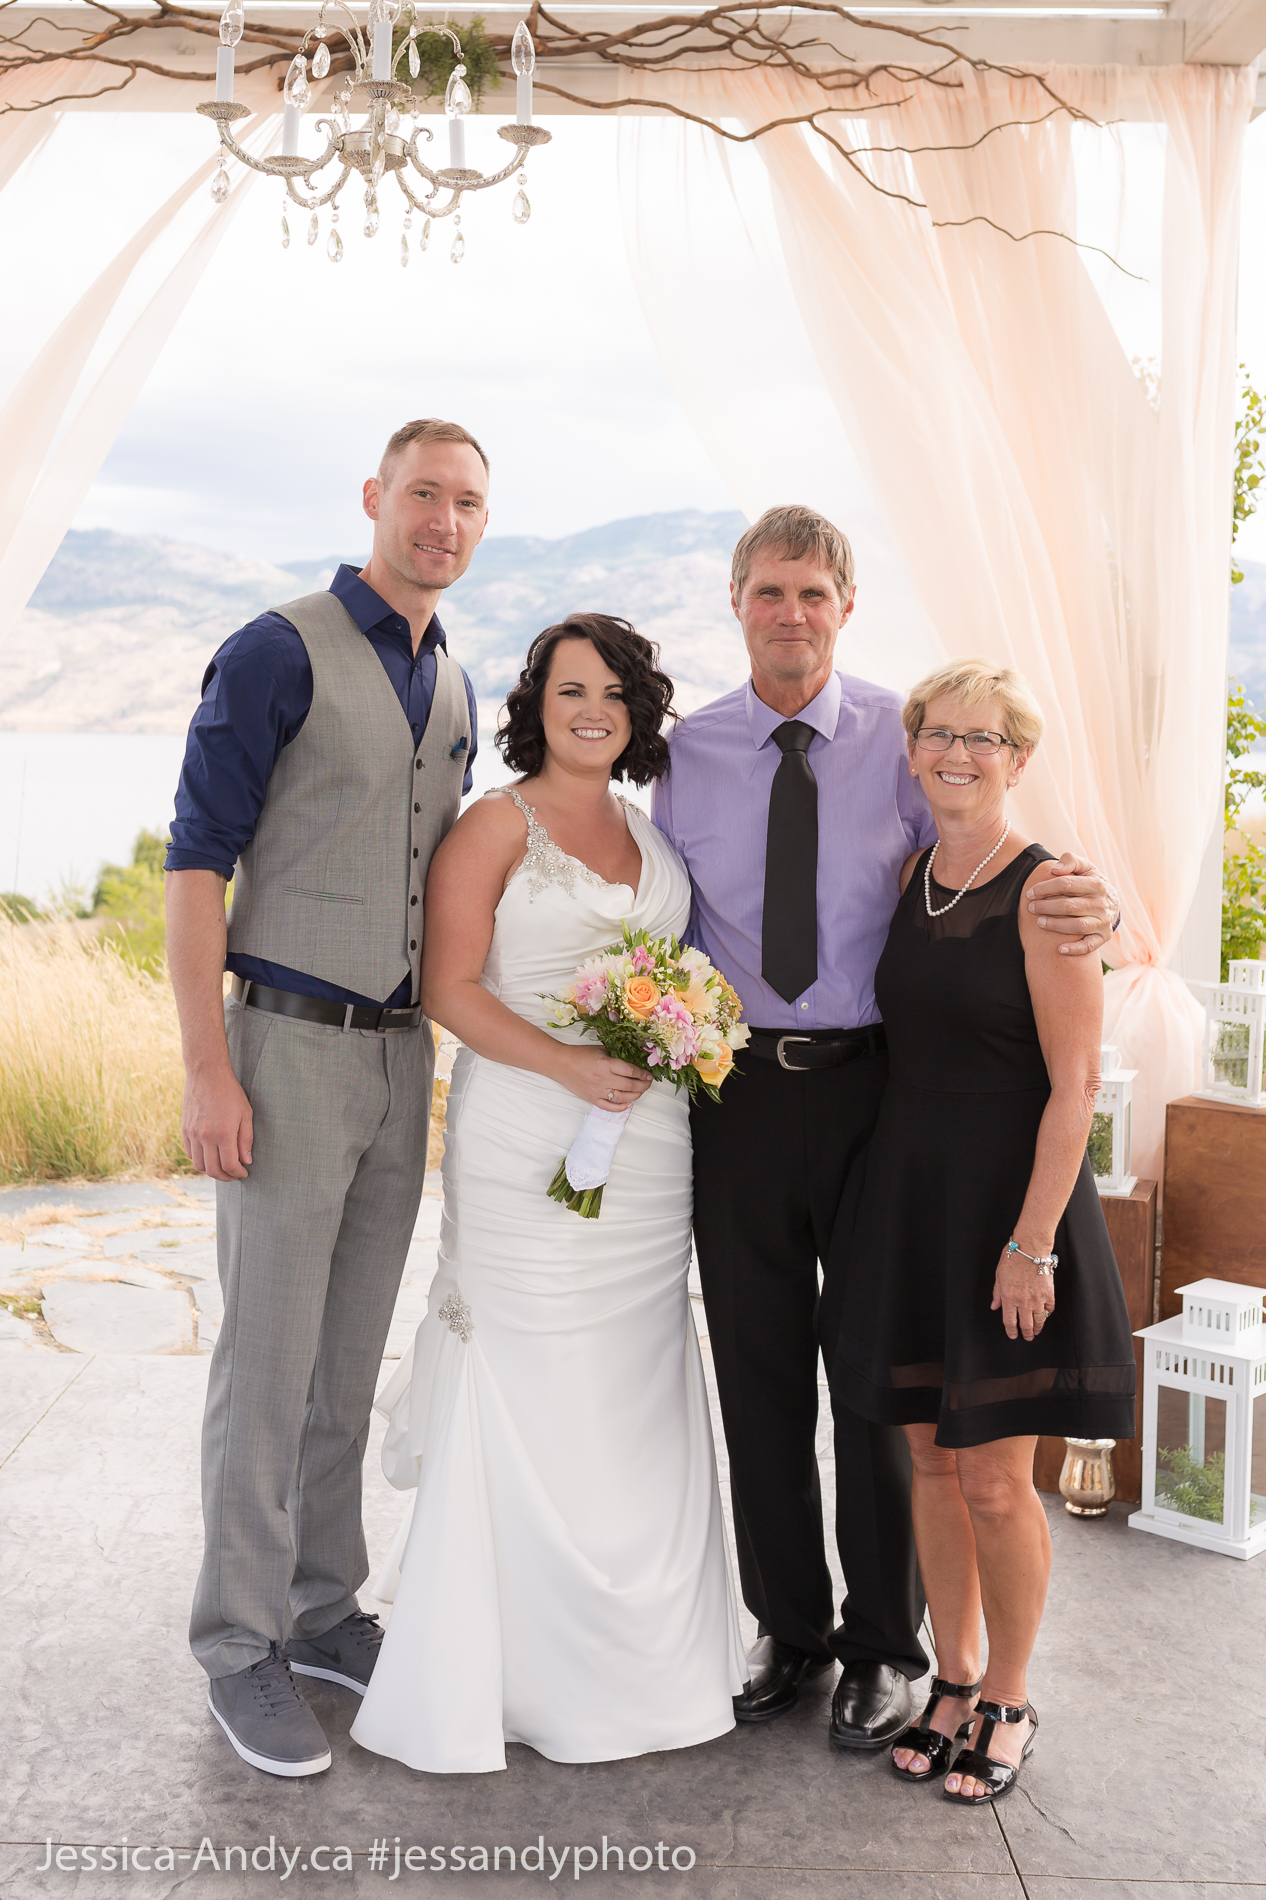 Family Time - Wedding Day